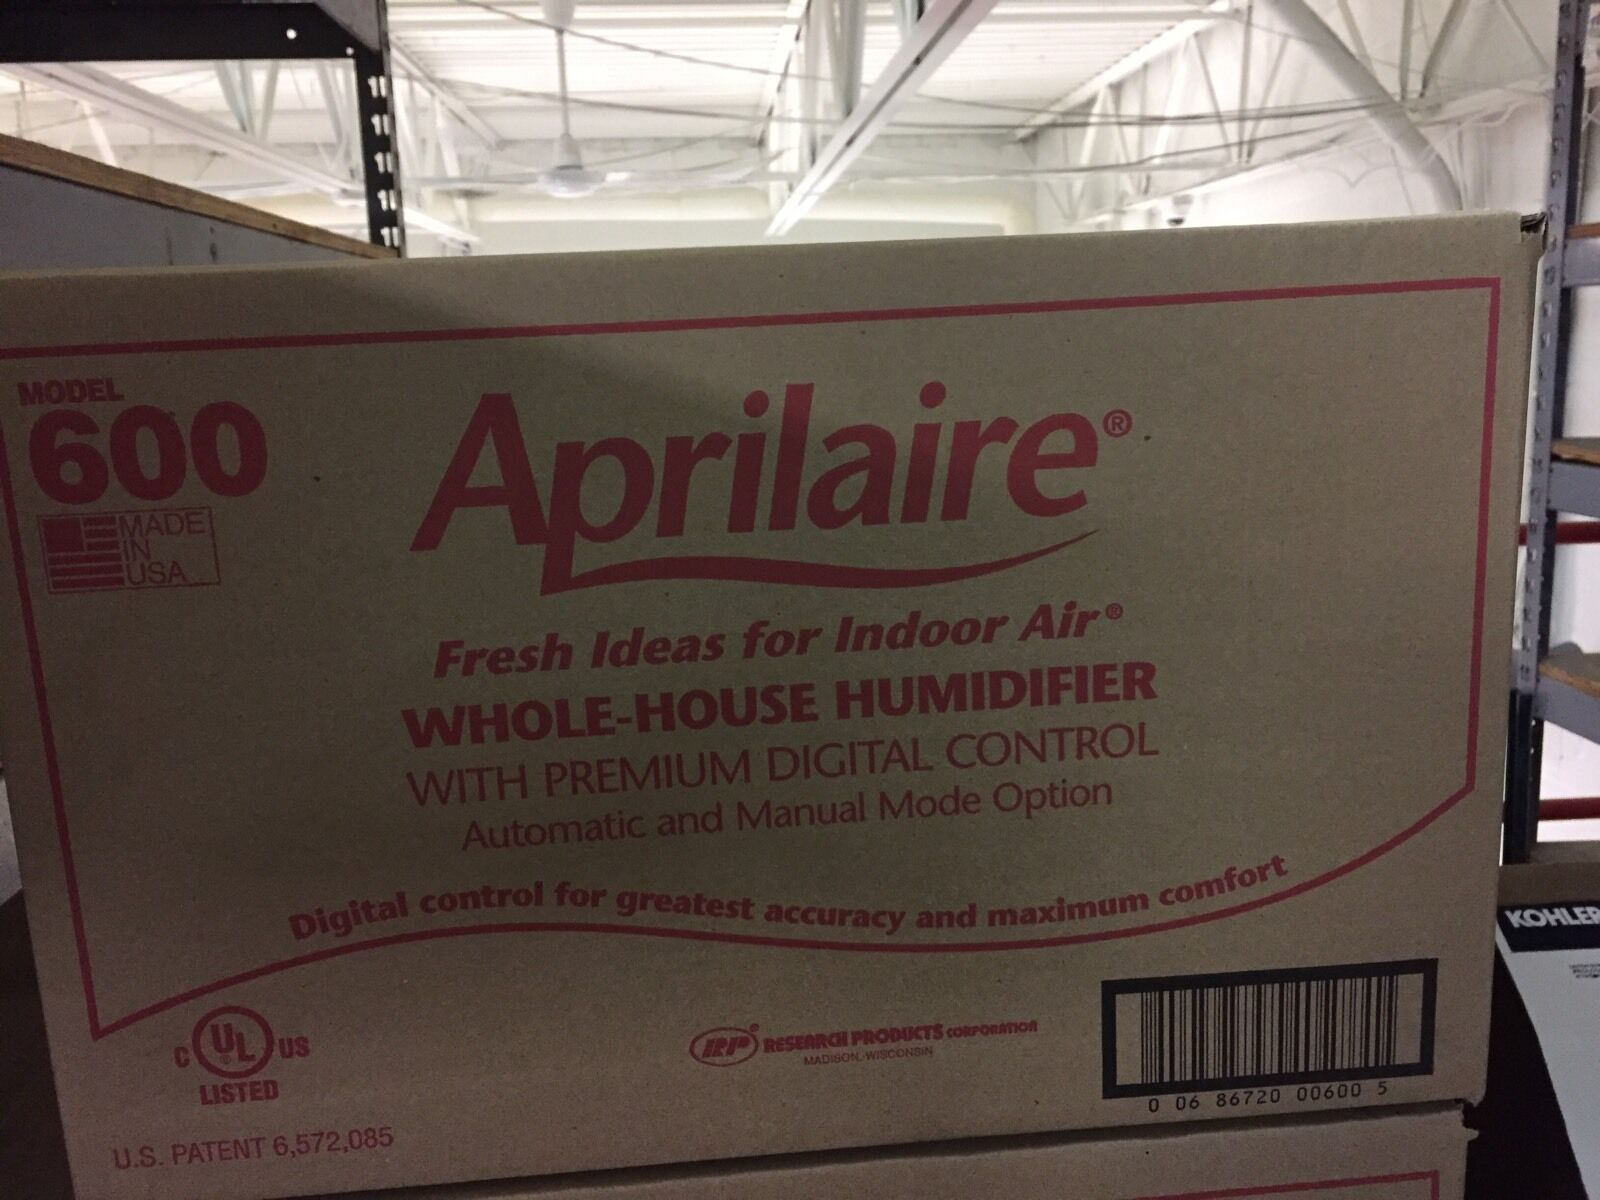 Купить Aprilaire 600 - Aprilaire 600 Automatic Whole Home Bypass Humidifier - NEW - Genuine OEM